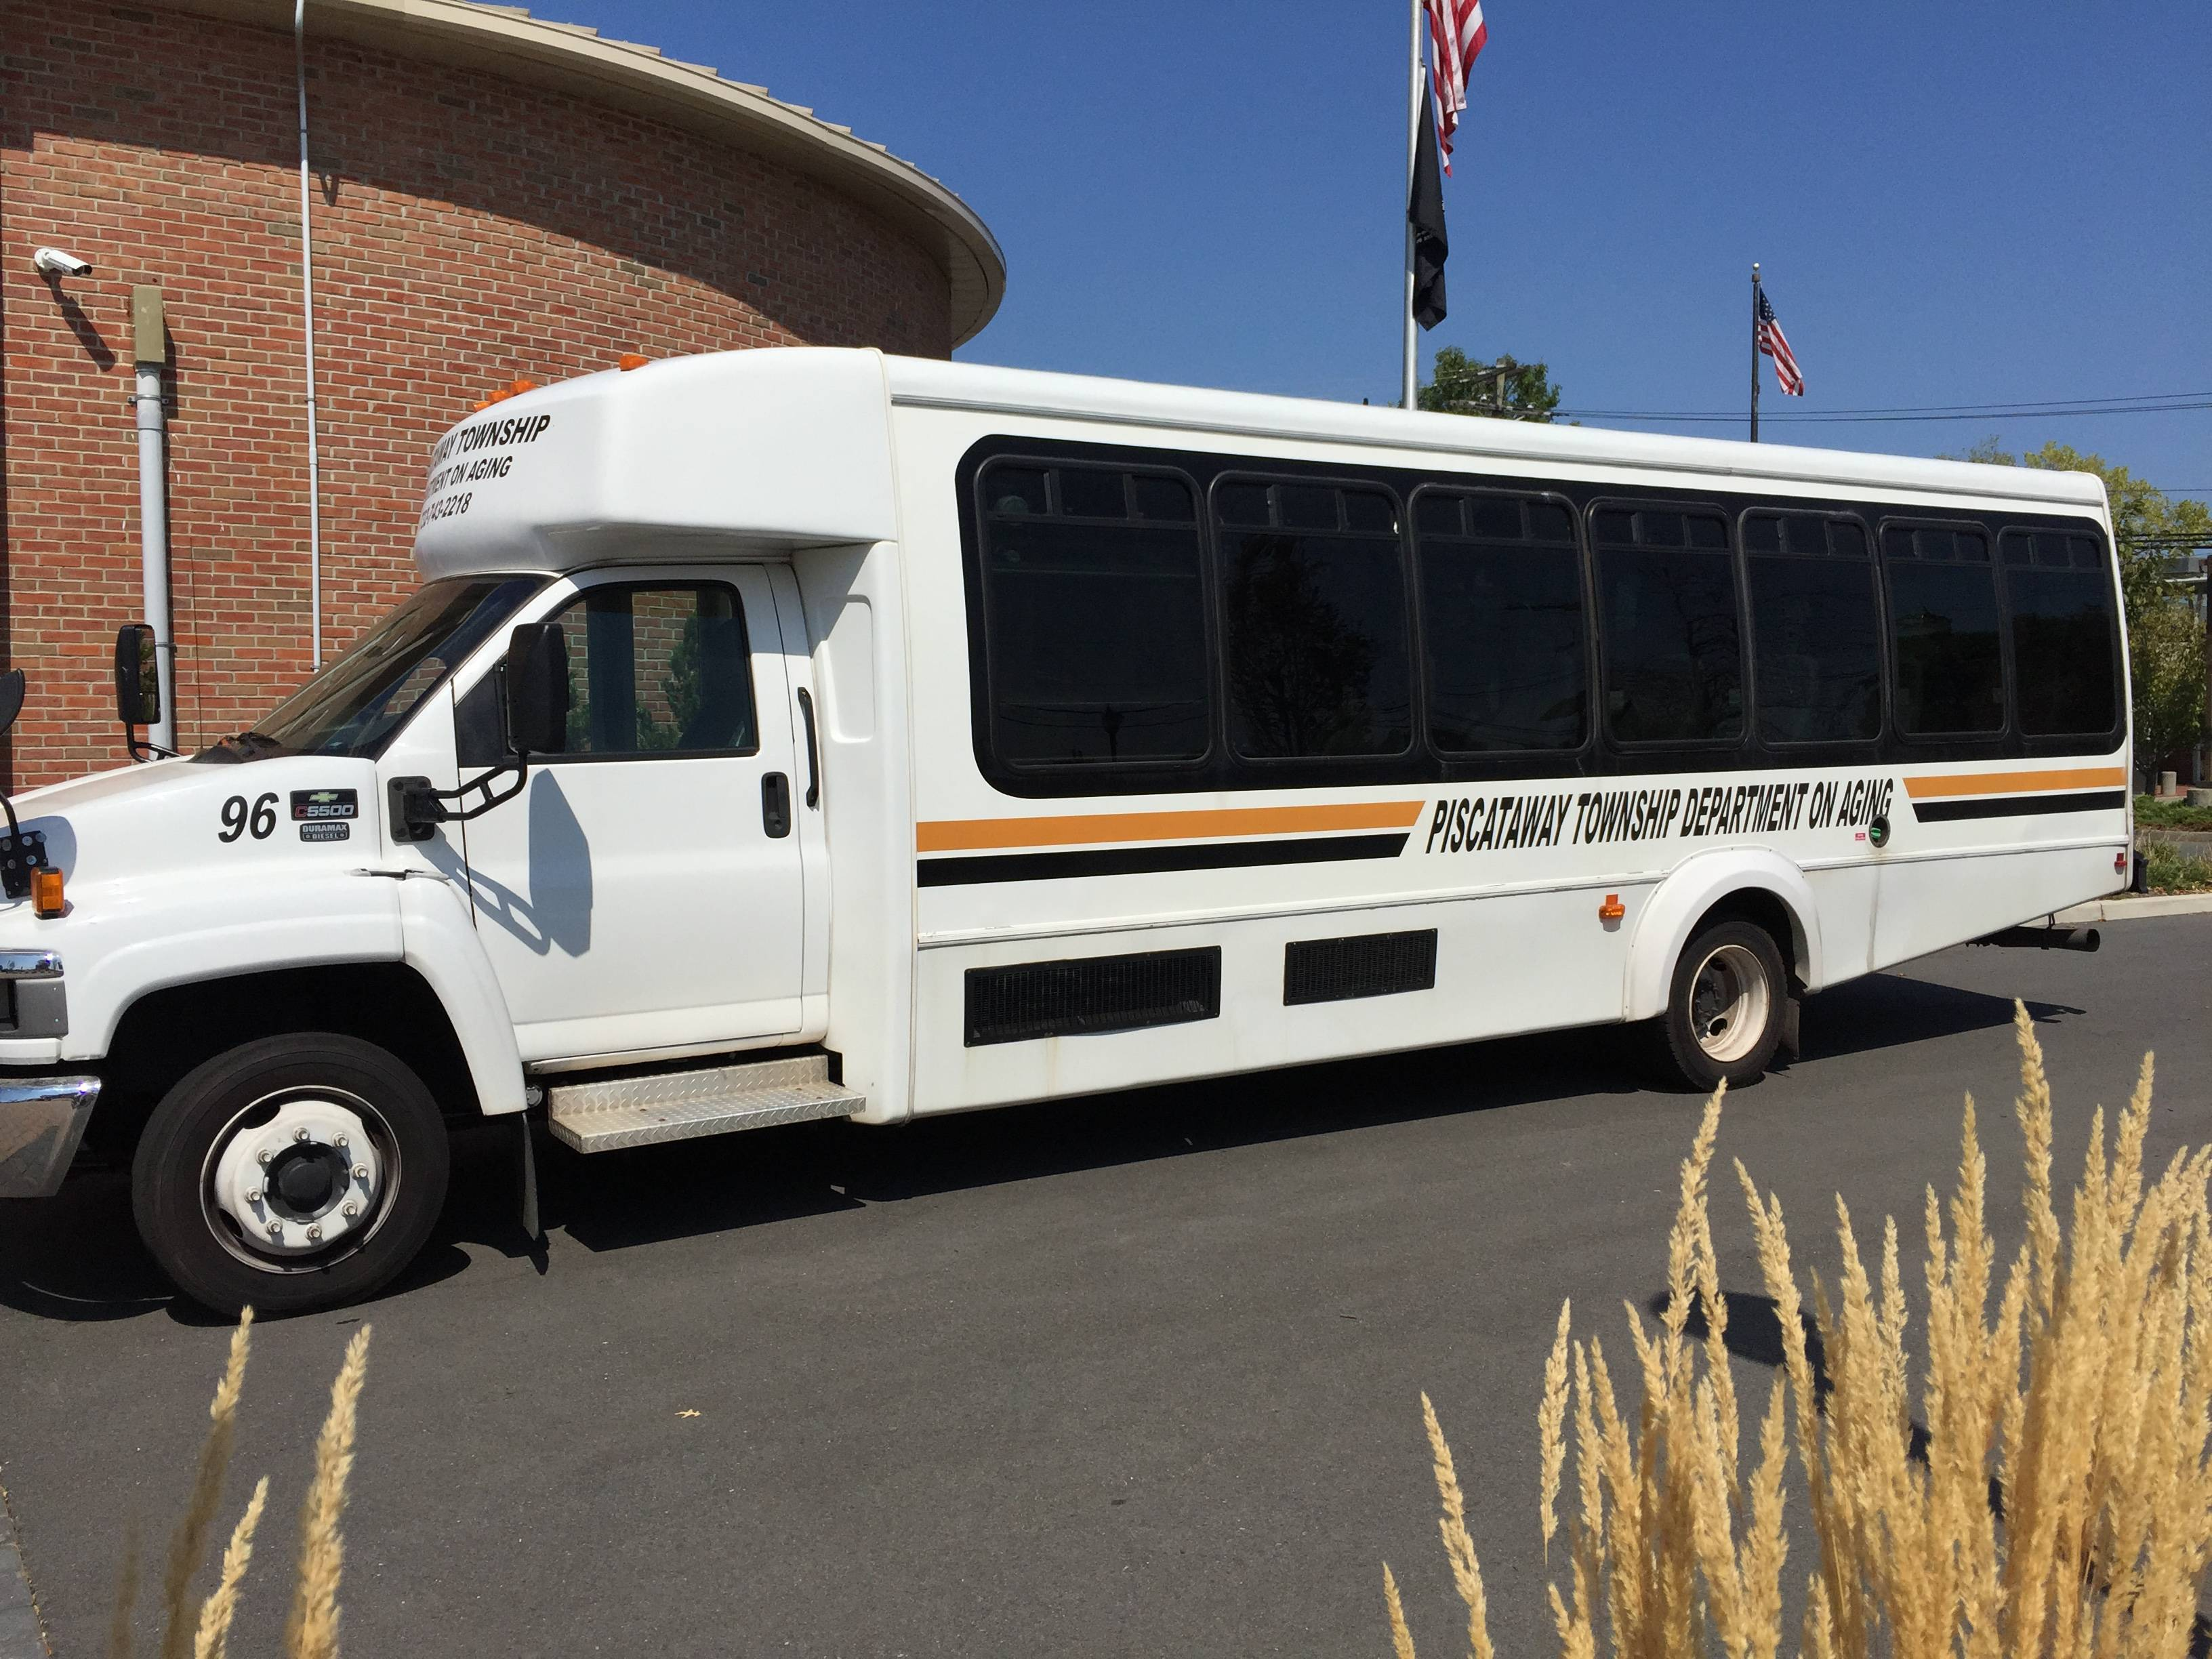 Bus Drivers Needed for the Piscataway Township Senior Center